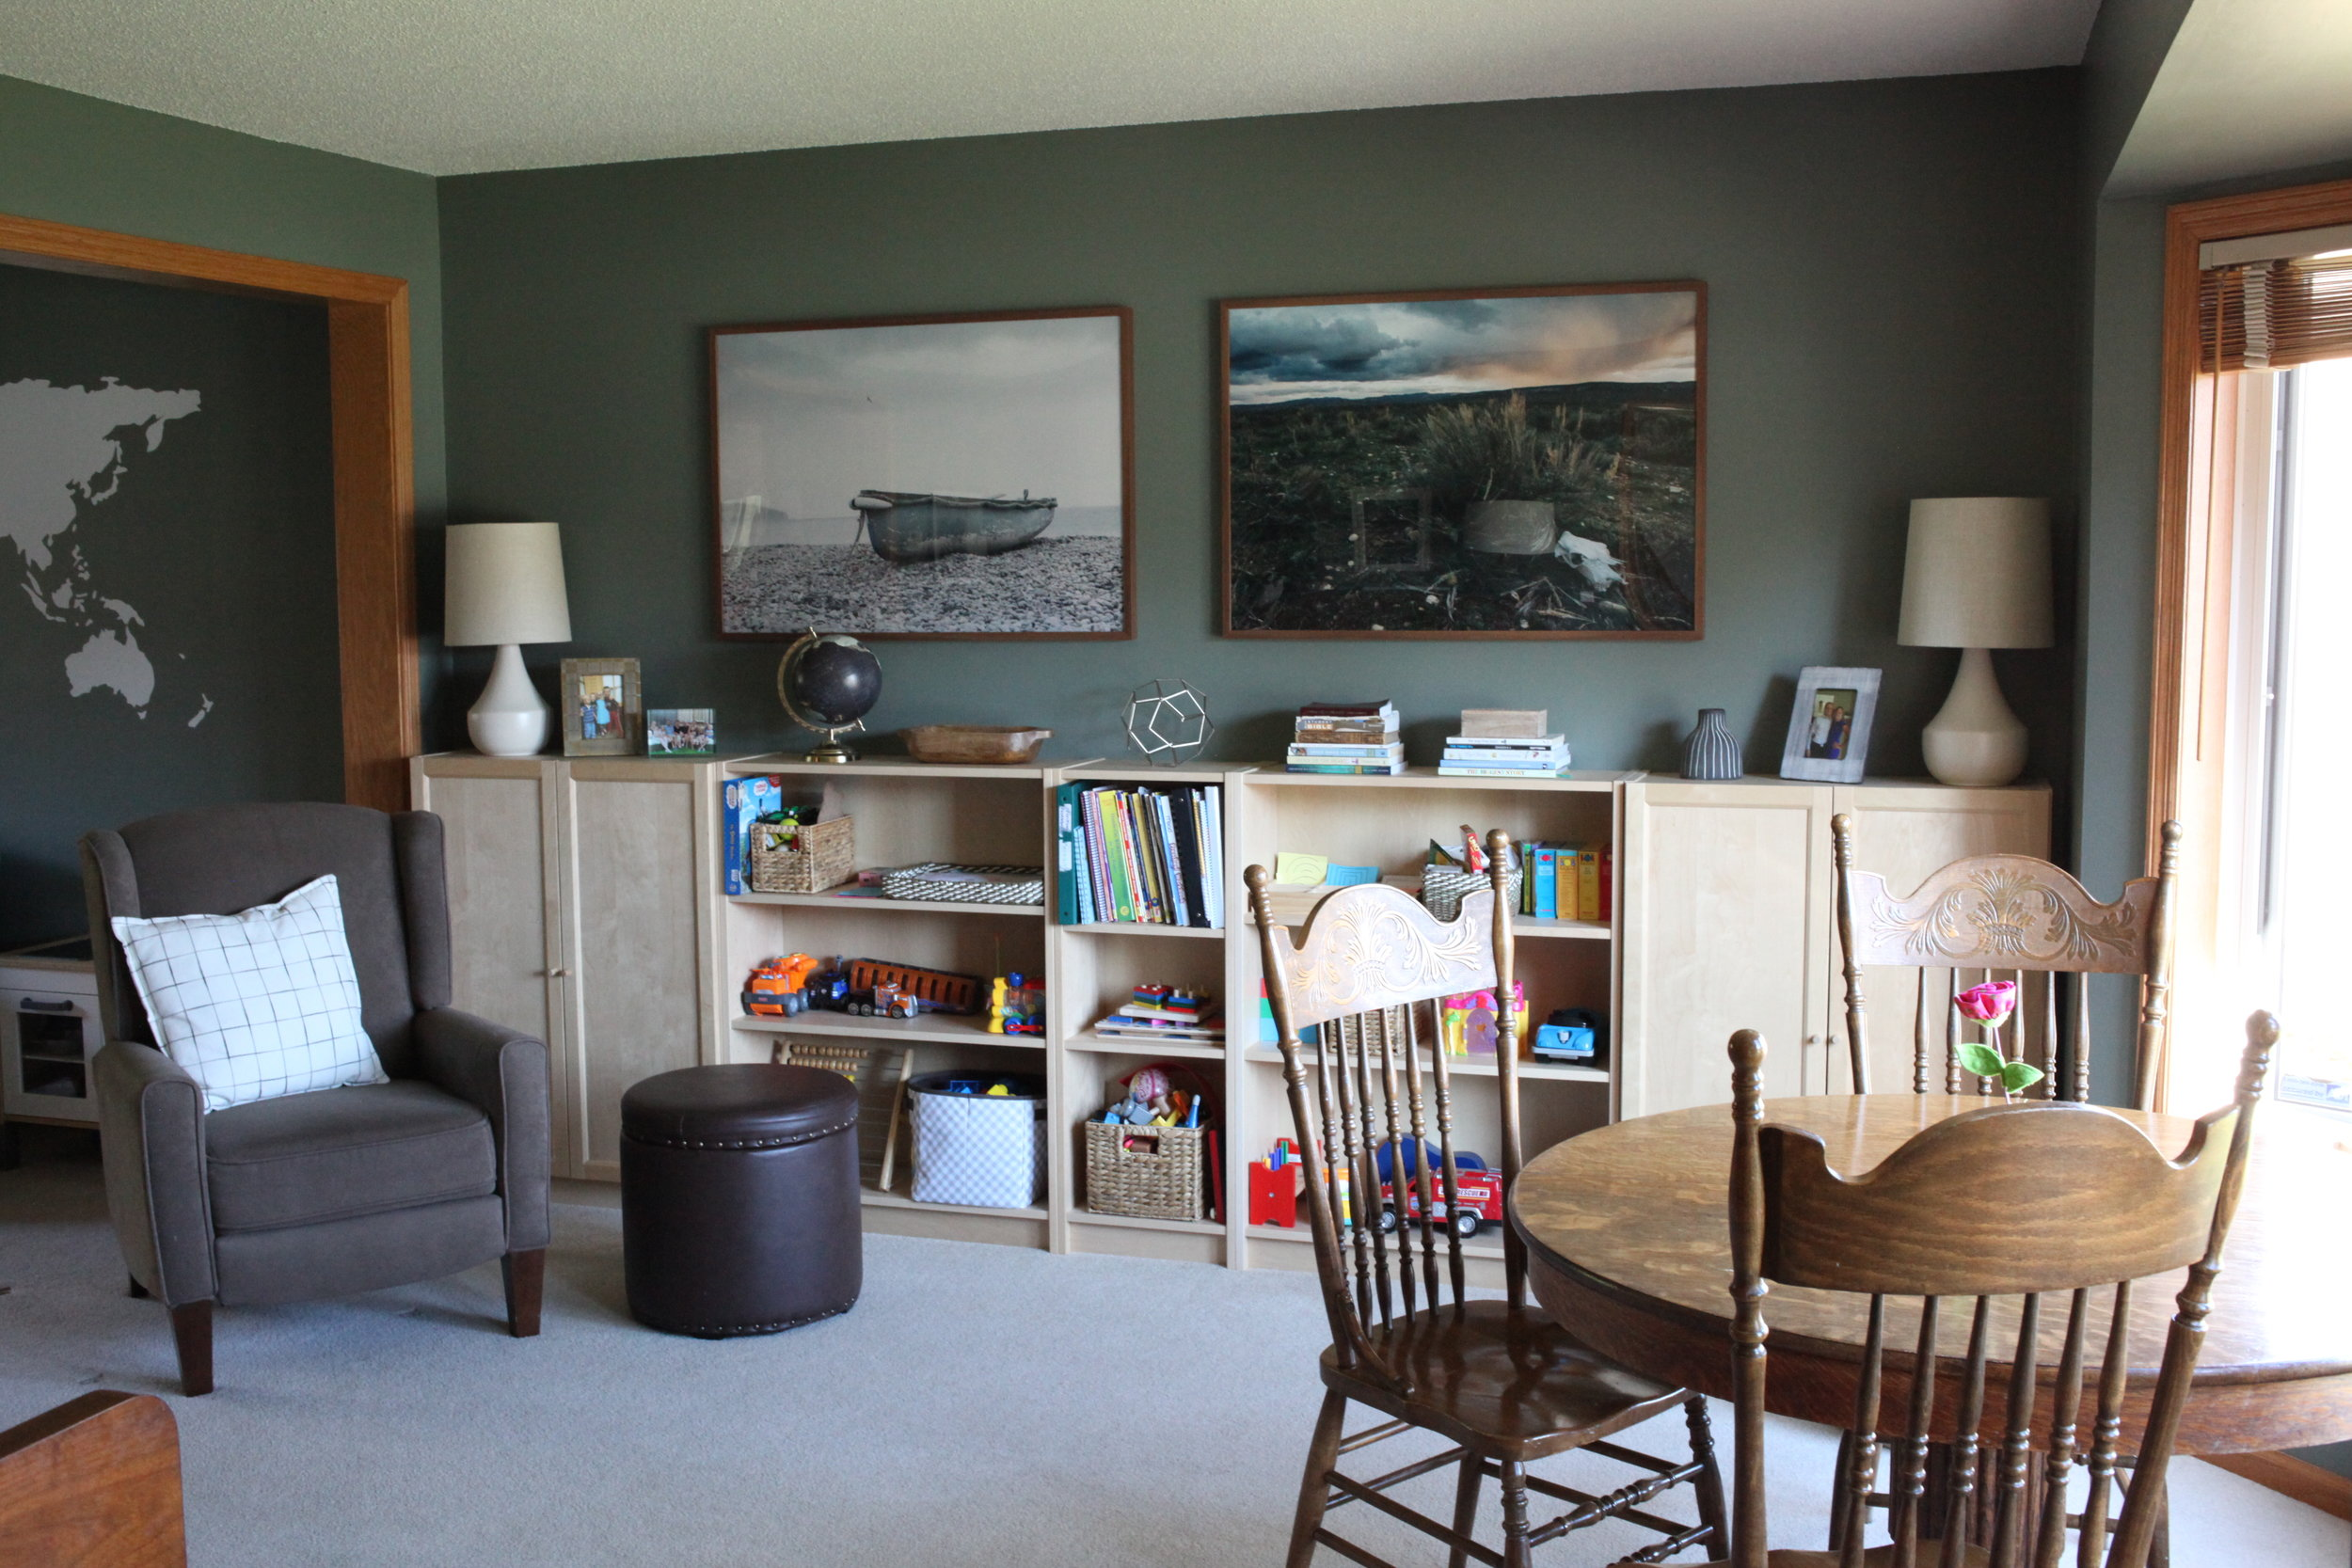 Home school room makeover with large photo art and round antique table. IKEA Billy bookcase